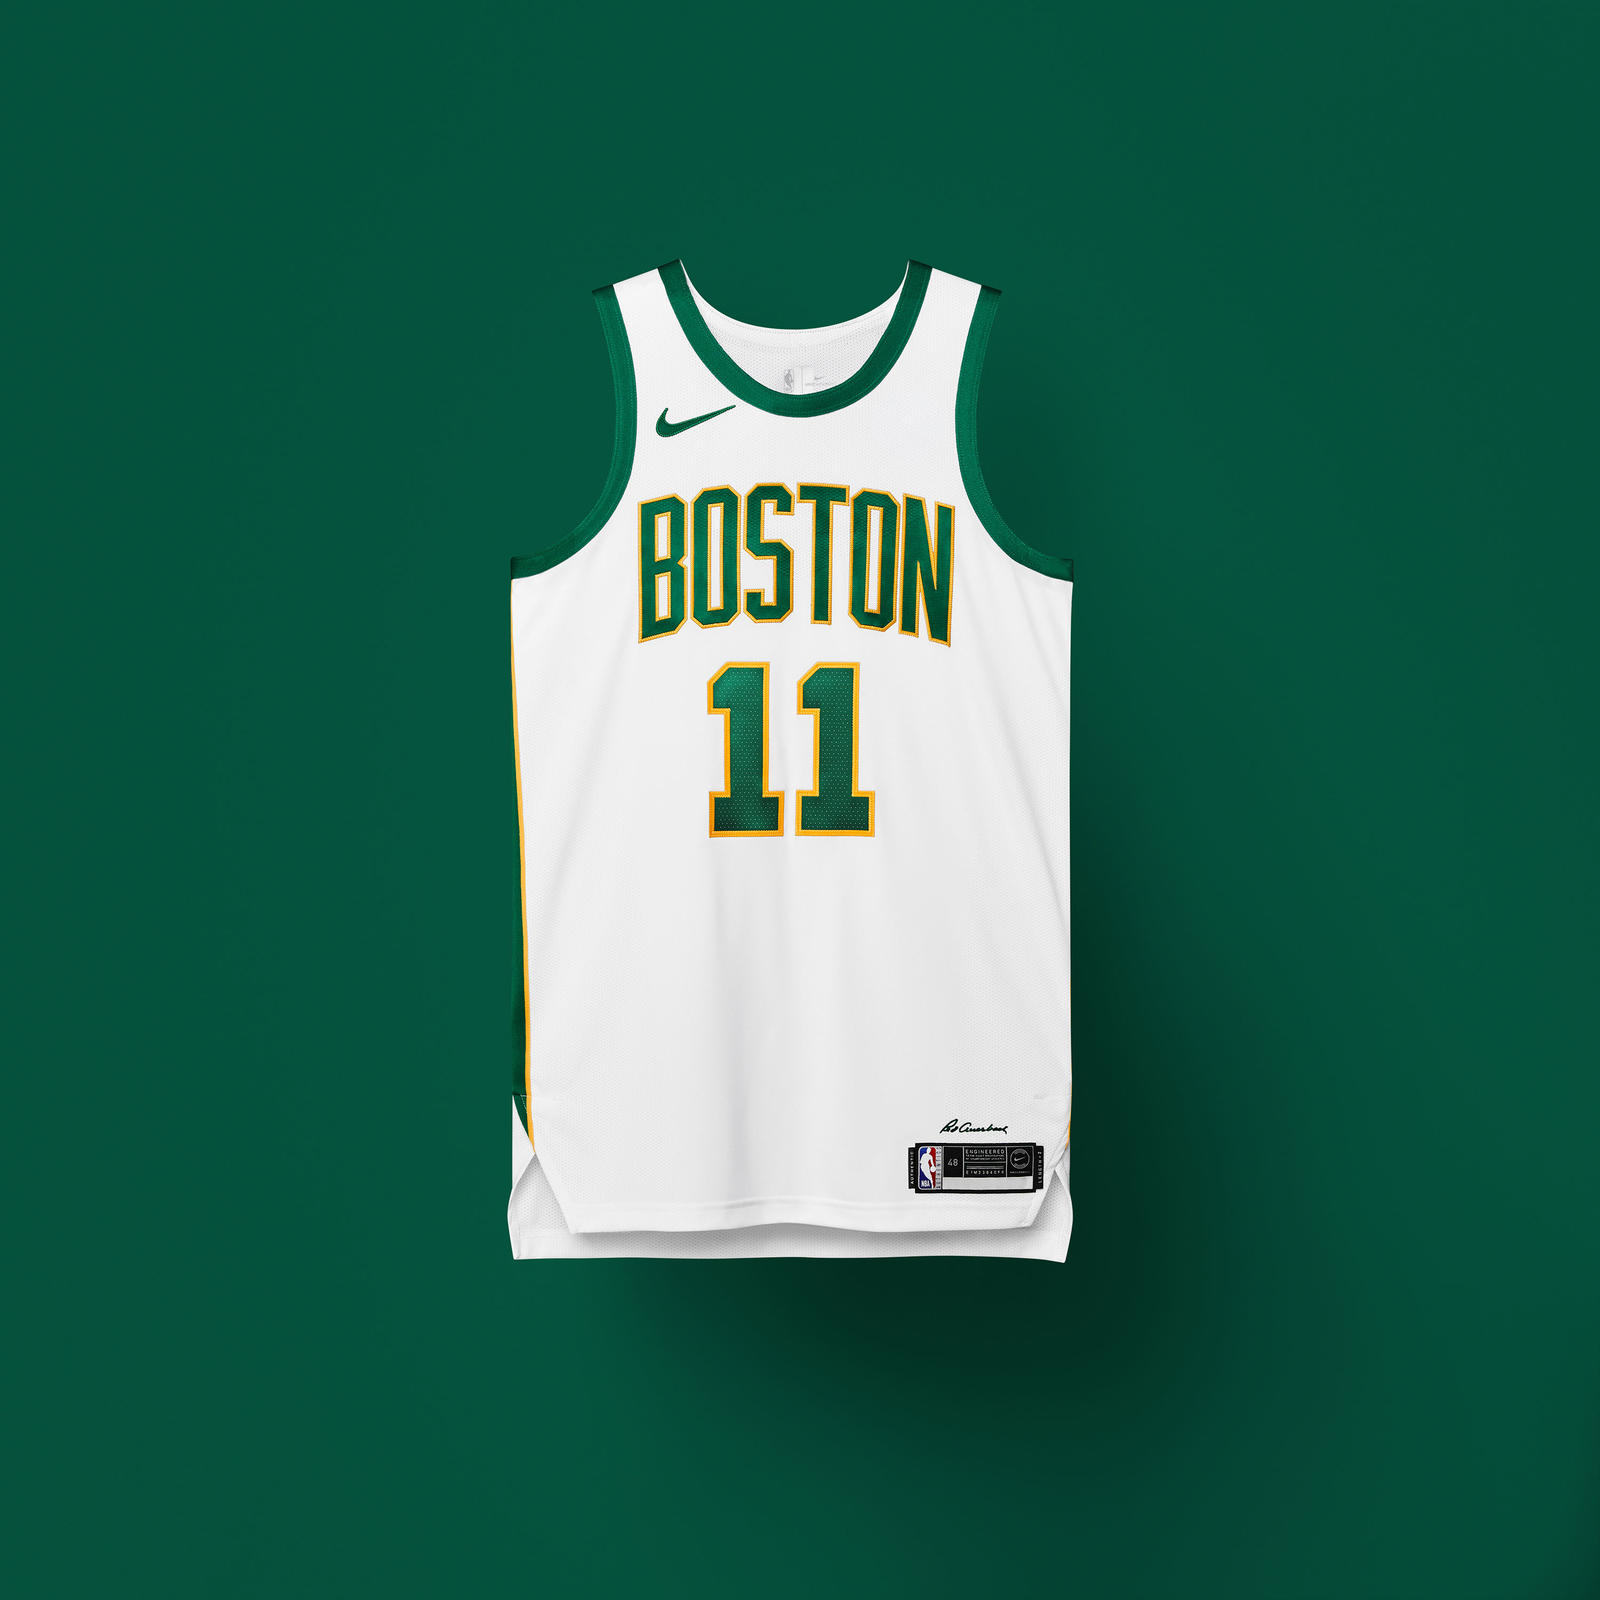 b83d7e689c7 Ranking every 'City Edition' jersey